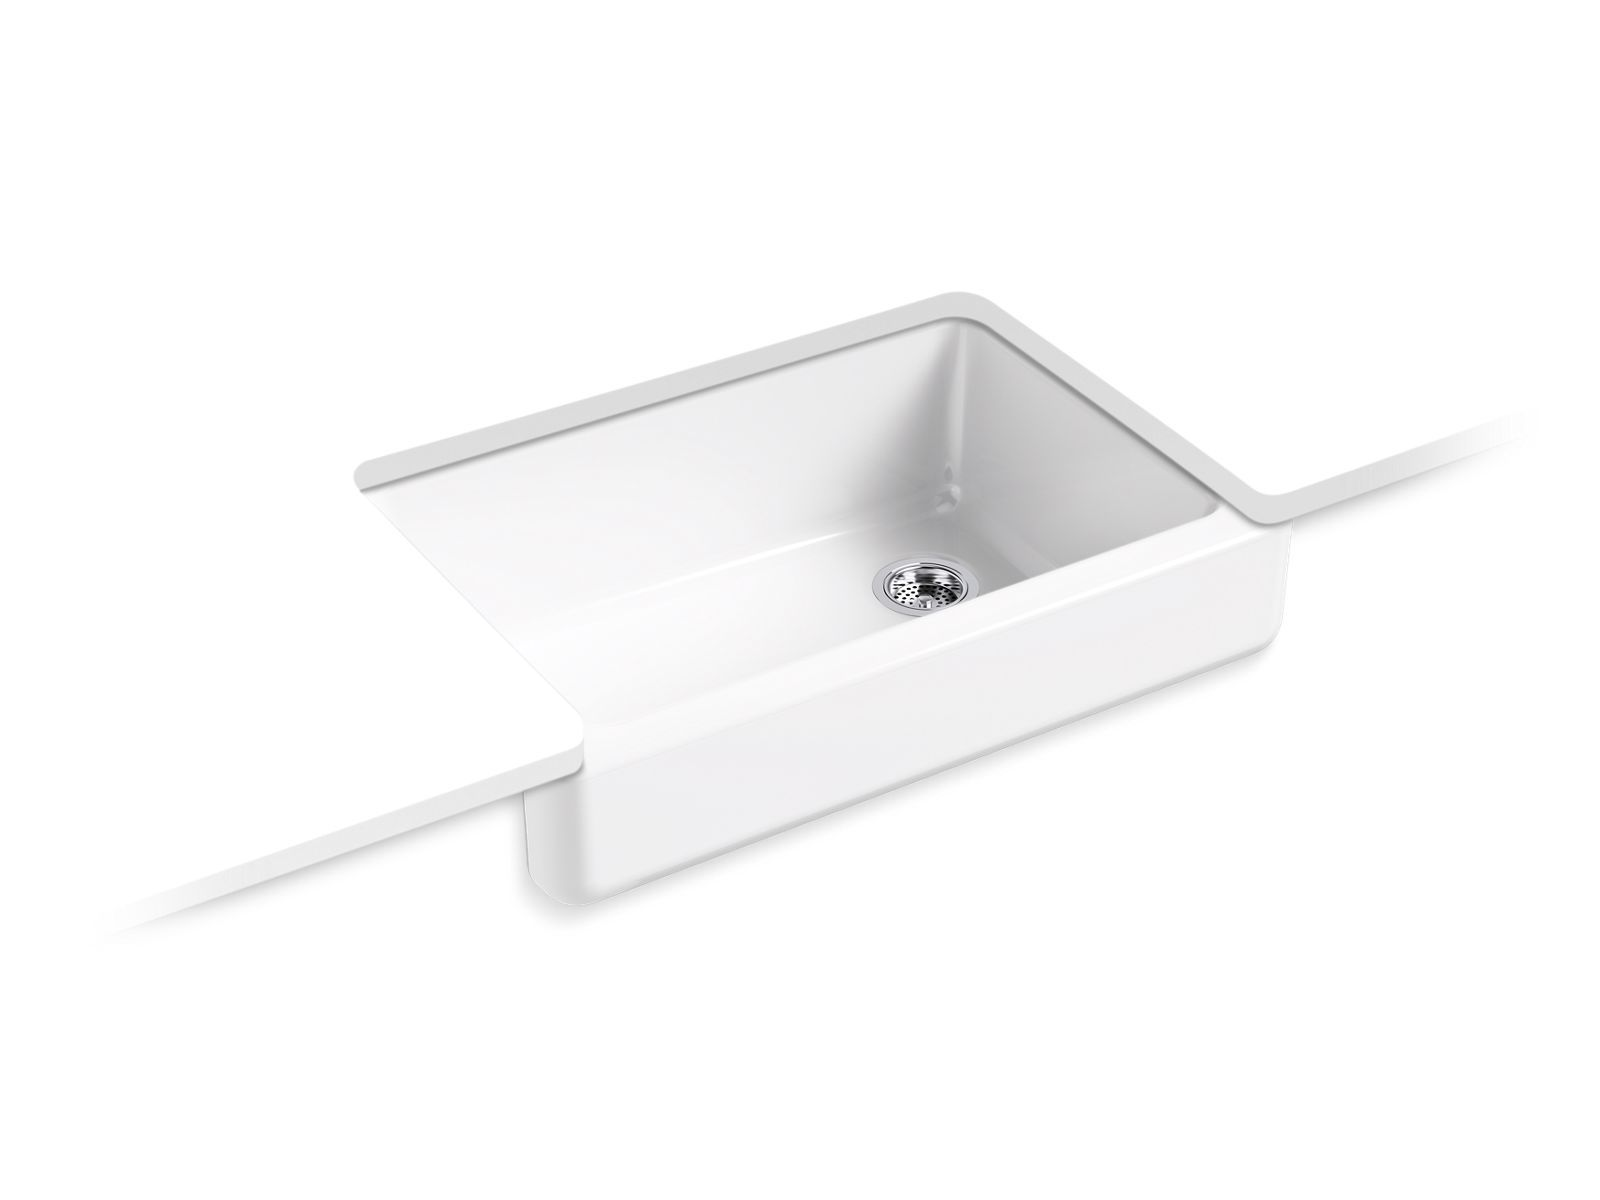 "Whitehaven Self-Trimming 32-1/2"" x 21-9/16"" x 9-5/8"" Under-Mount Single-Bowl Sink with Short Apron"